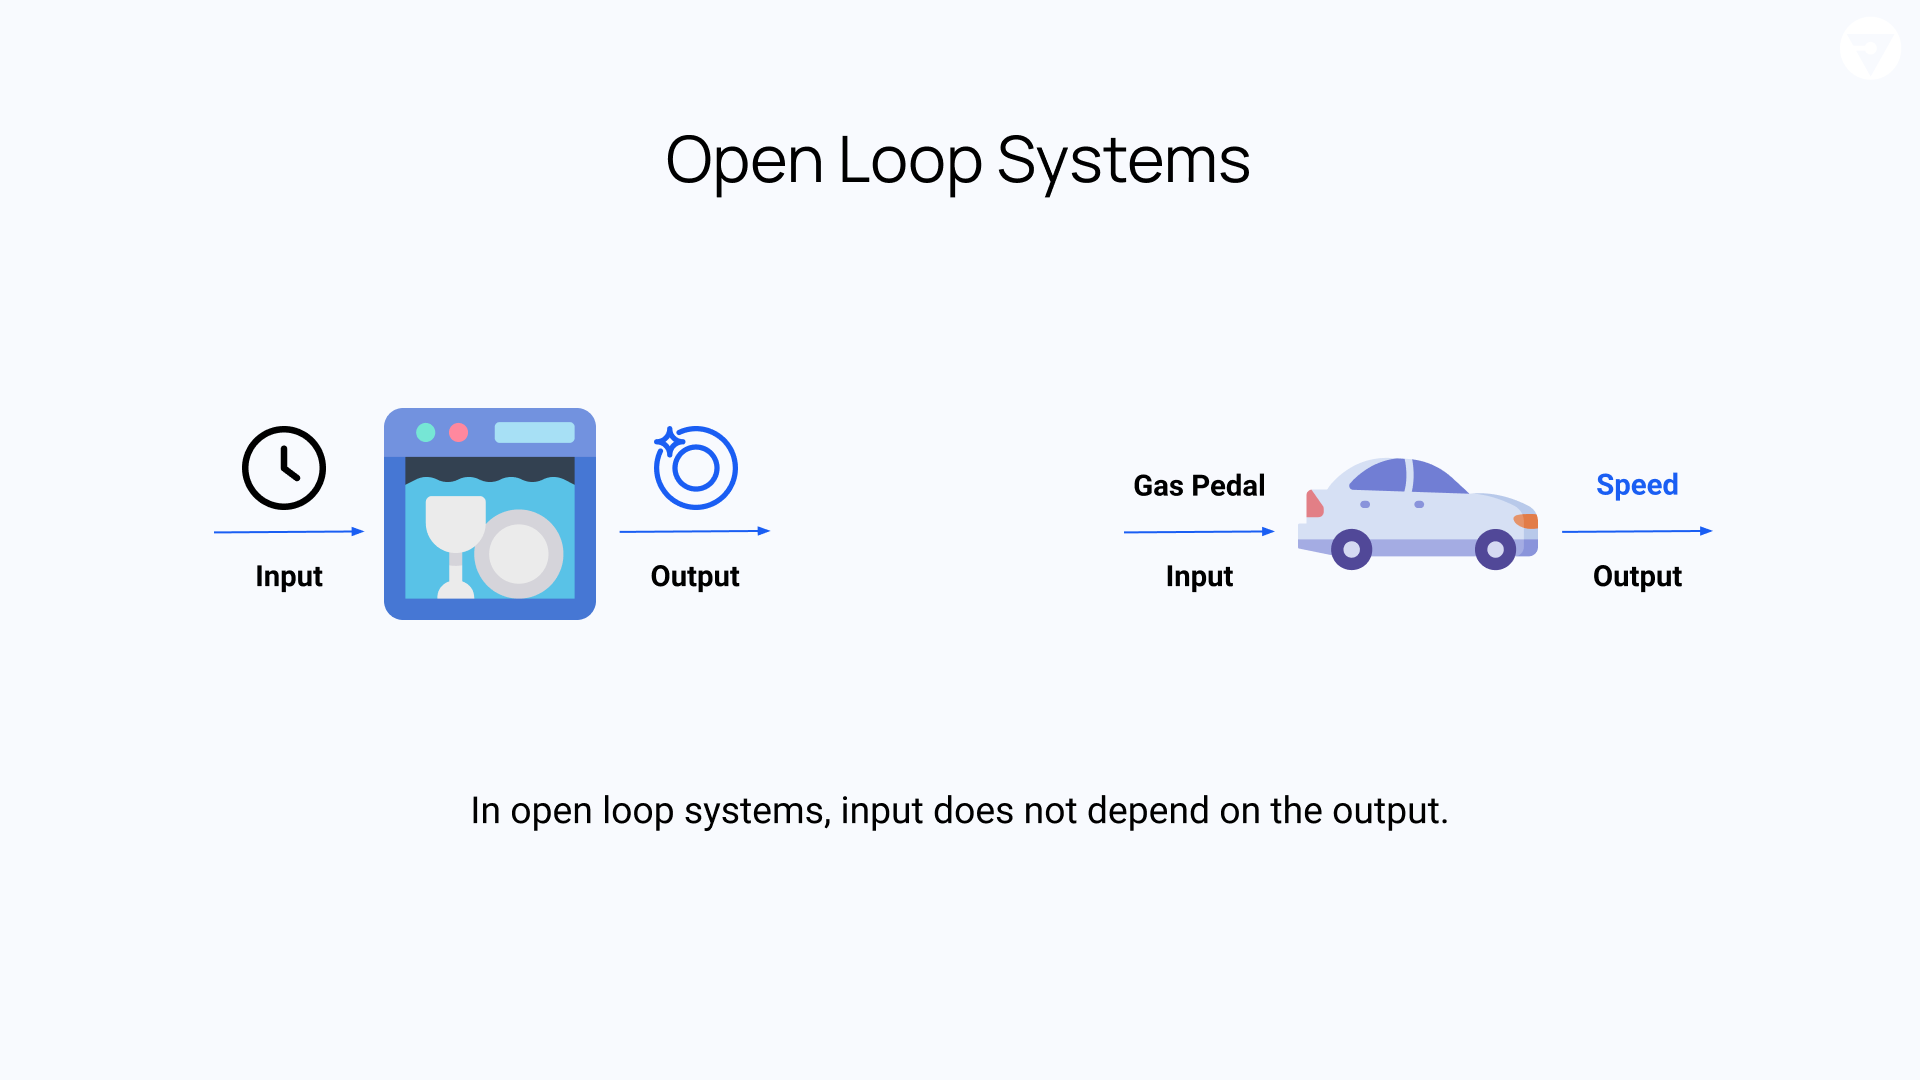 In open-loop systems, input does not depend on the output.